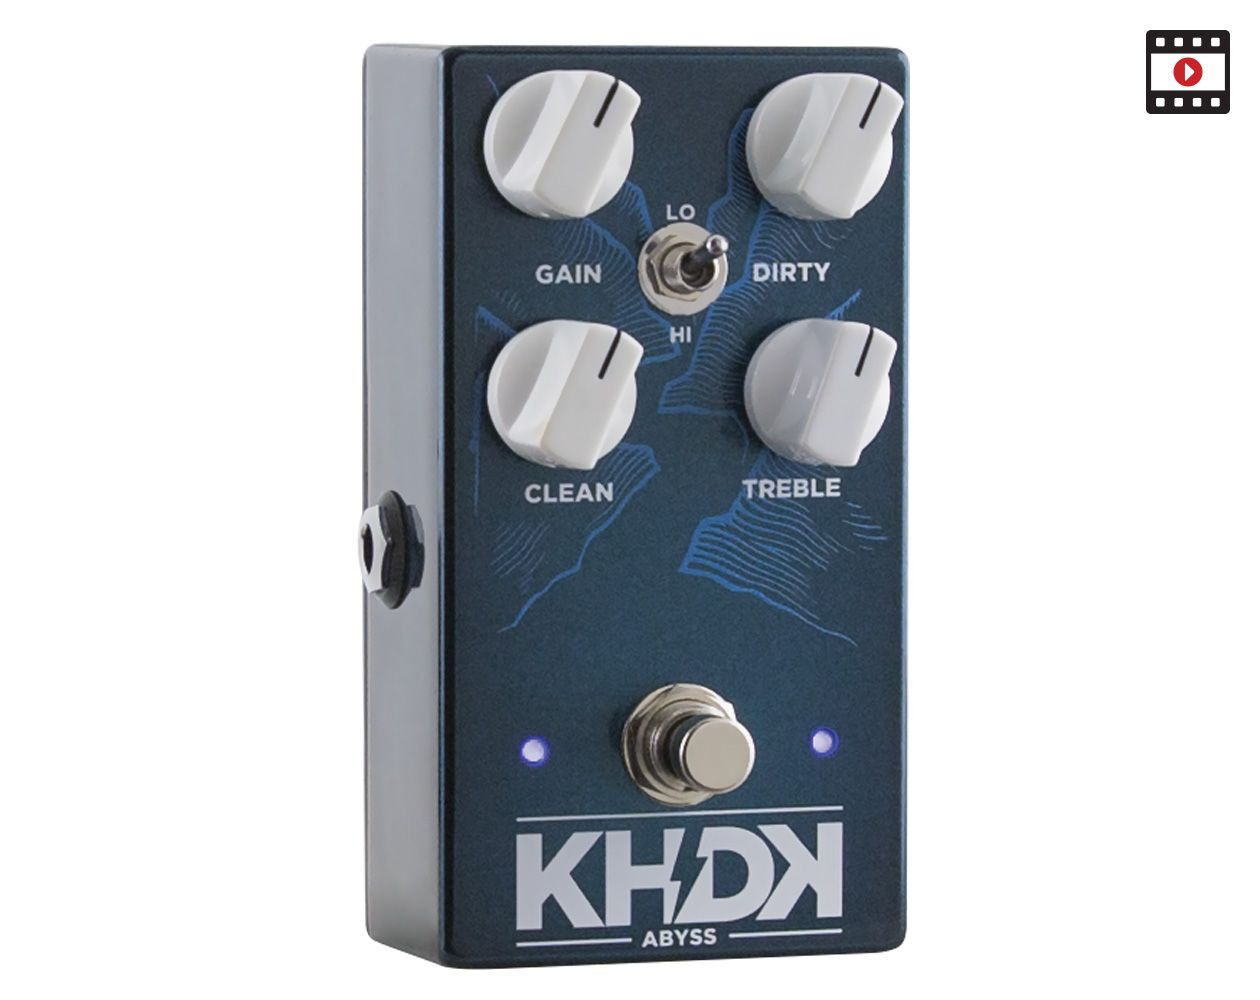 KHDK Abyss Review